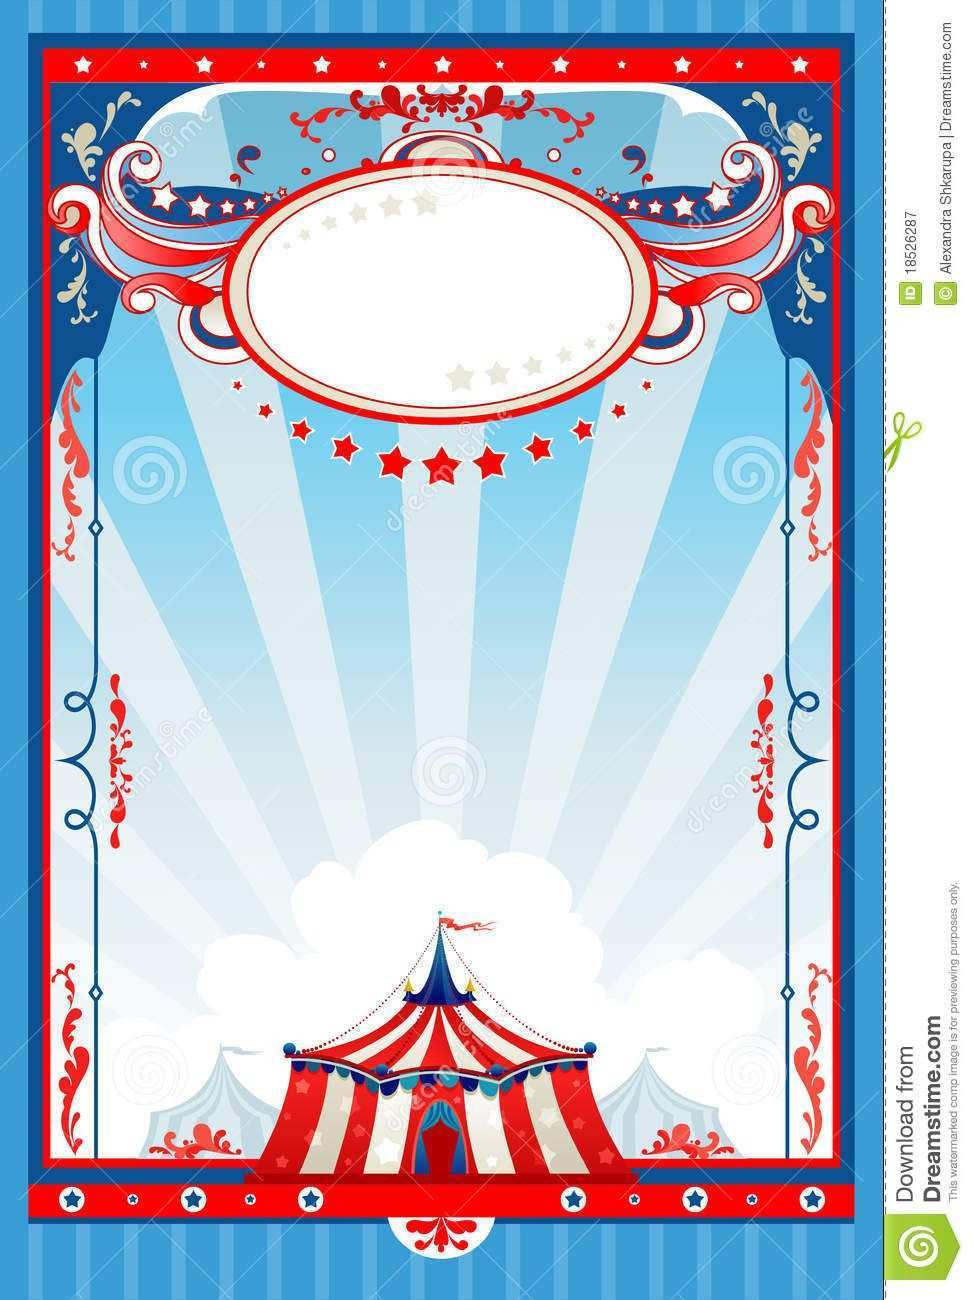 Photo About Circus Poster With Space For Text Illustration Of Space Background Amusement 18526287 Circus Poster Carnival Posters Stock Photography Free